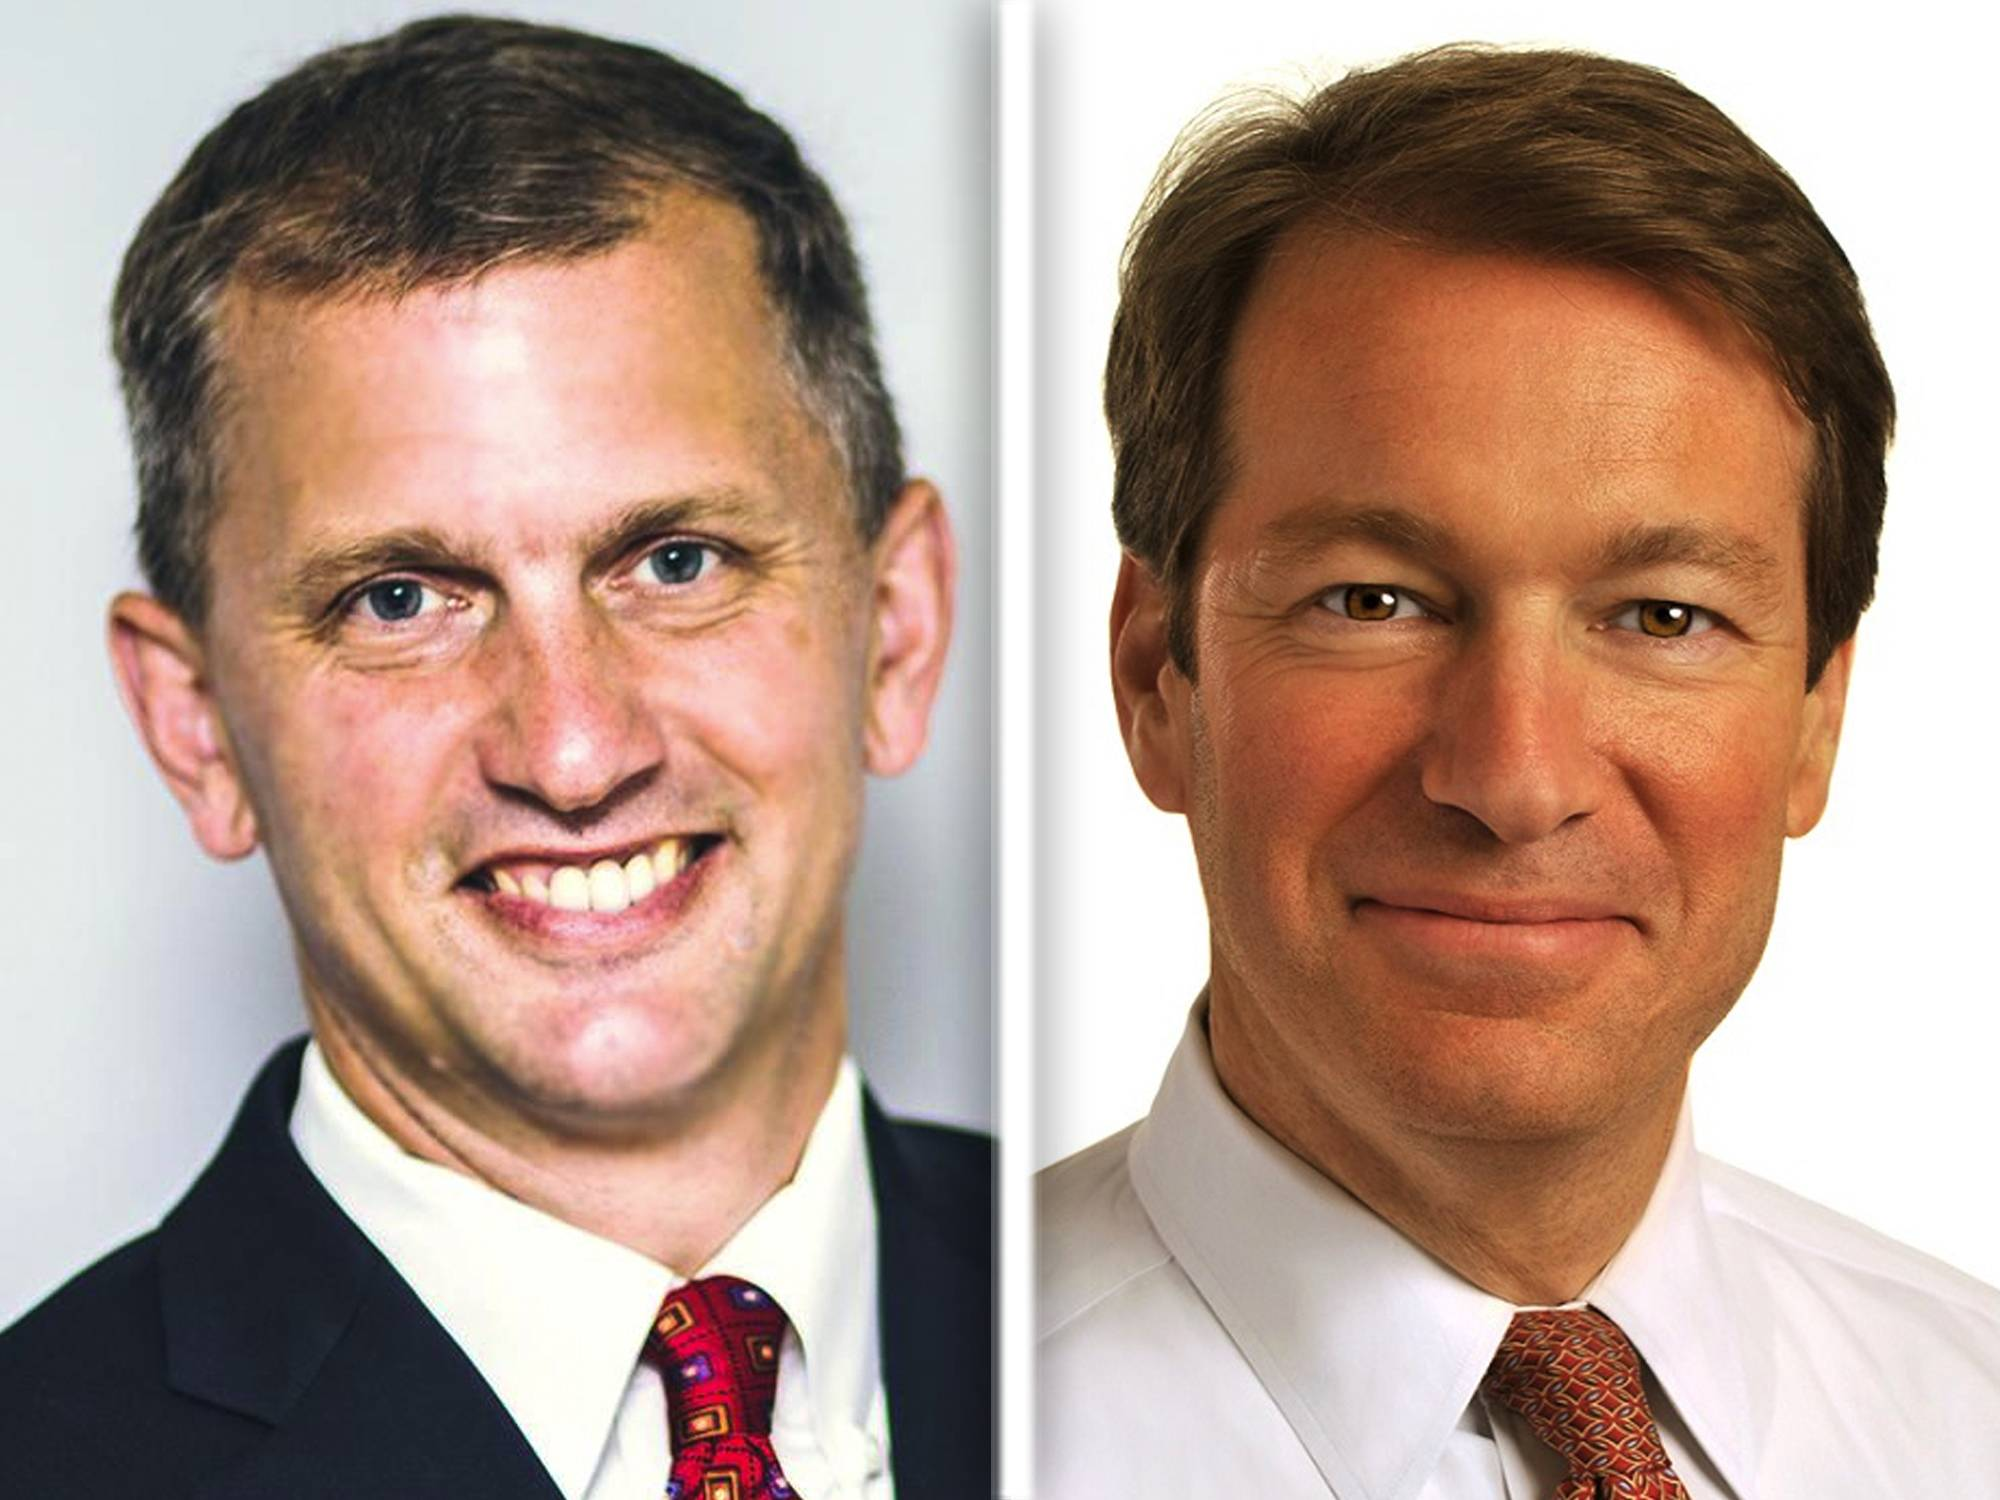 Candidates in the 6th U.S. Congressional District, Democrat Sean Casten and Republican incumbent Peter Roskam, show their political differences in their views on abortion but both say they support a continuation of the Violence Against Women Act.